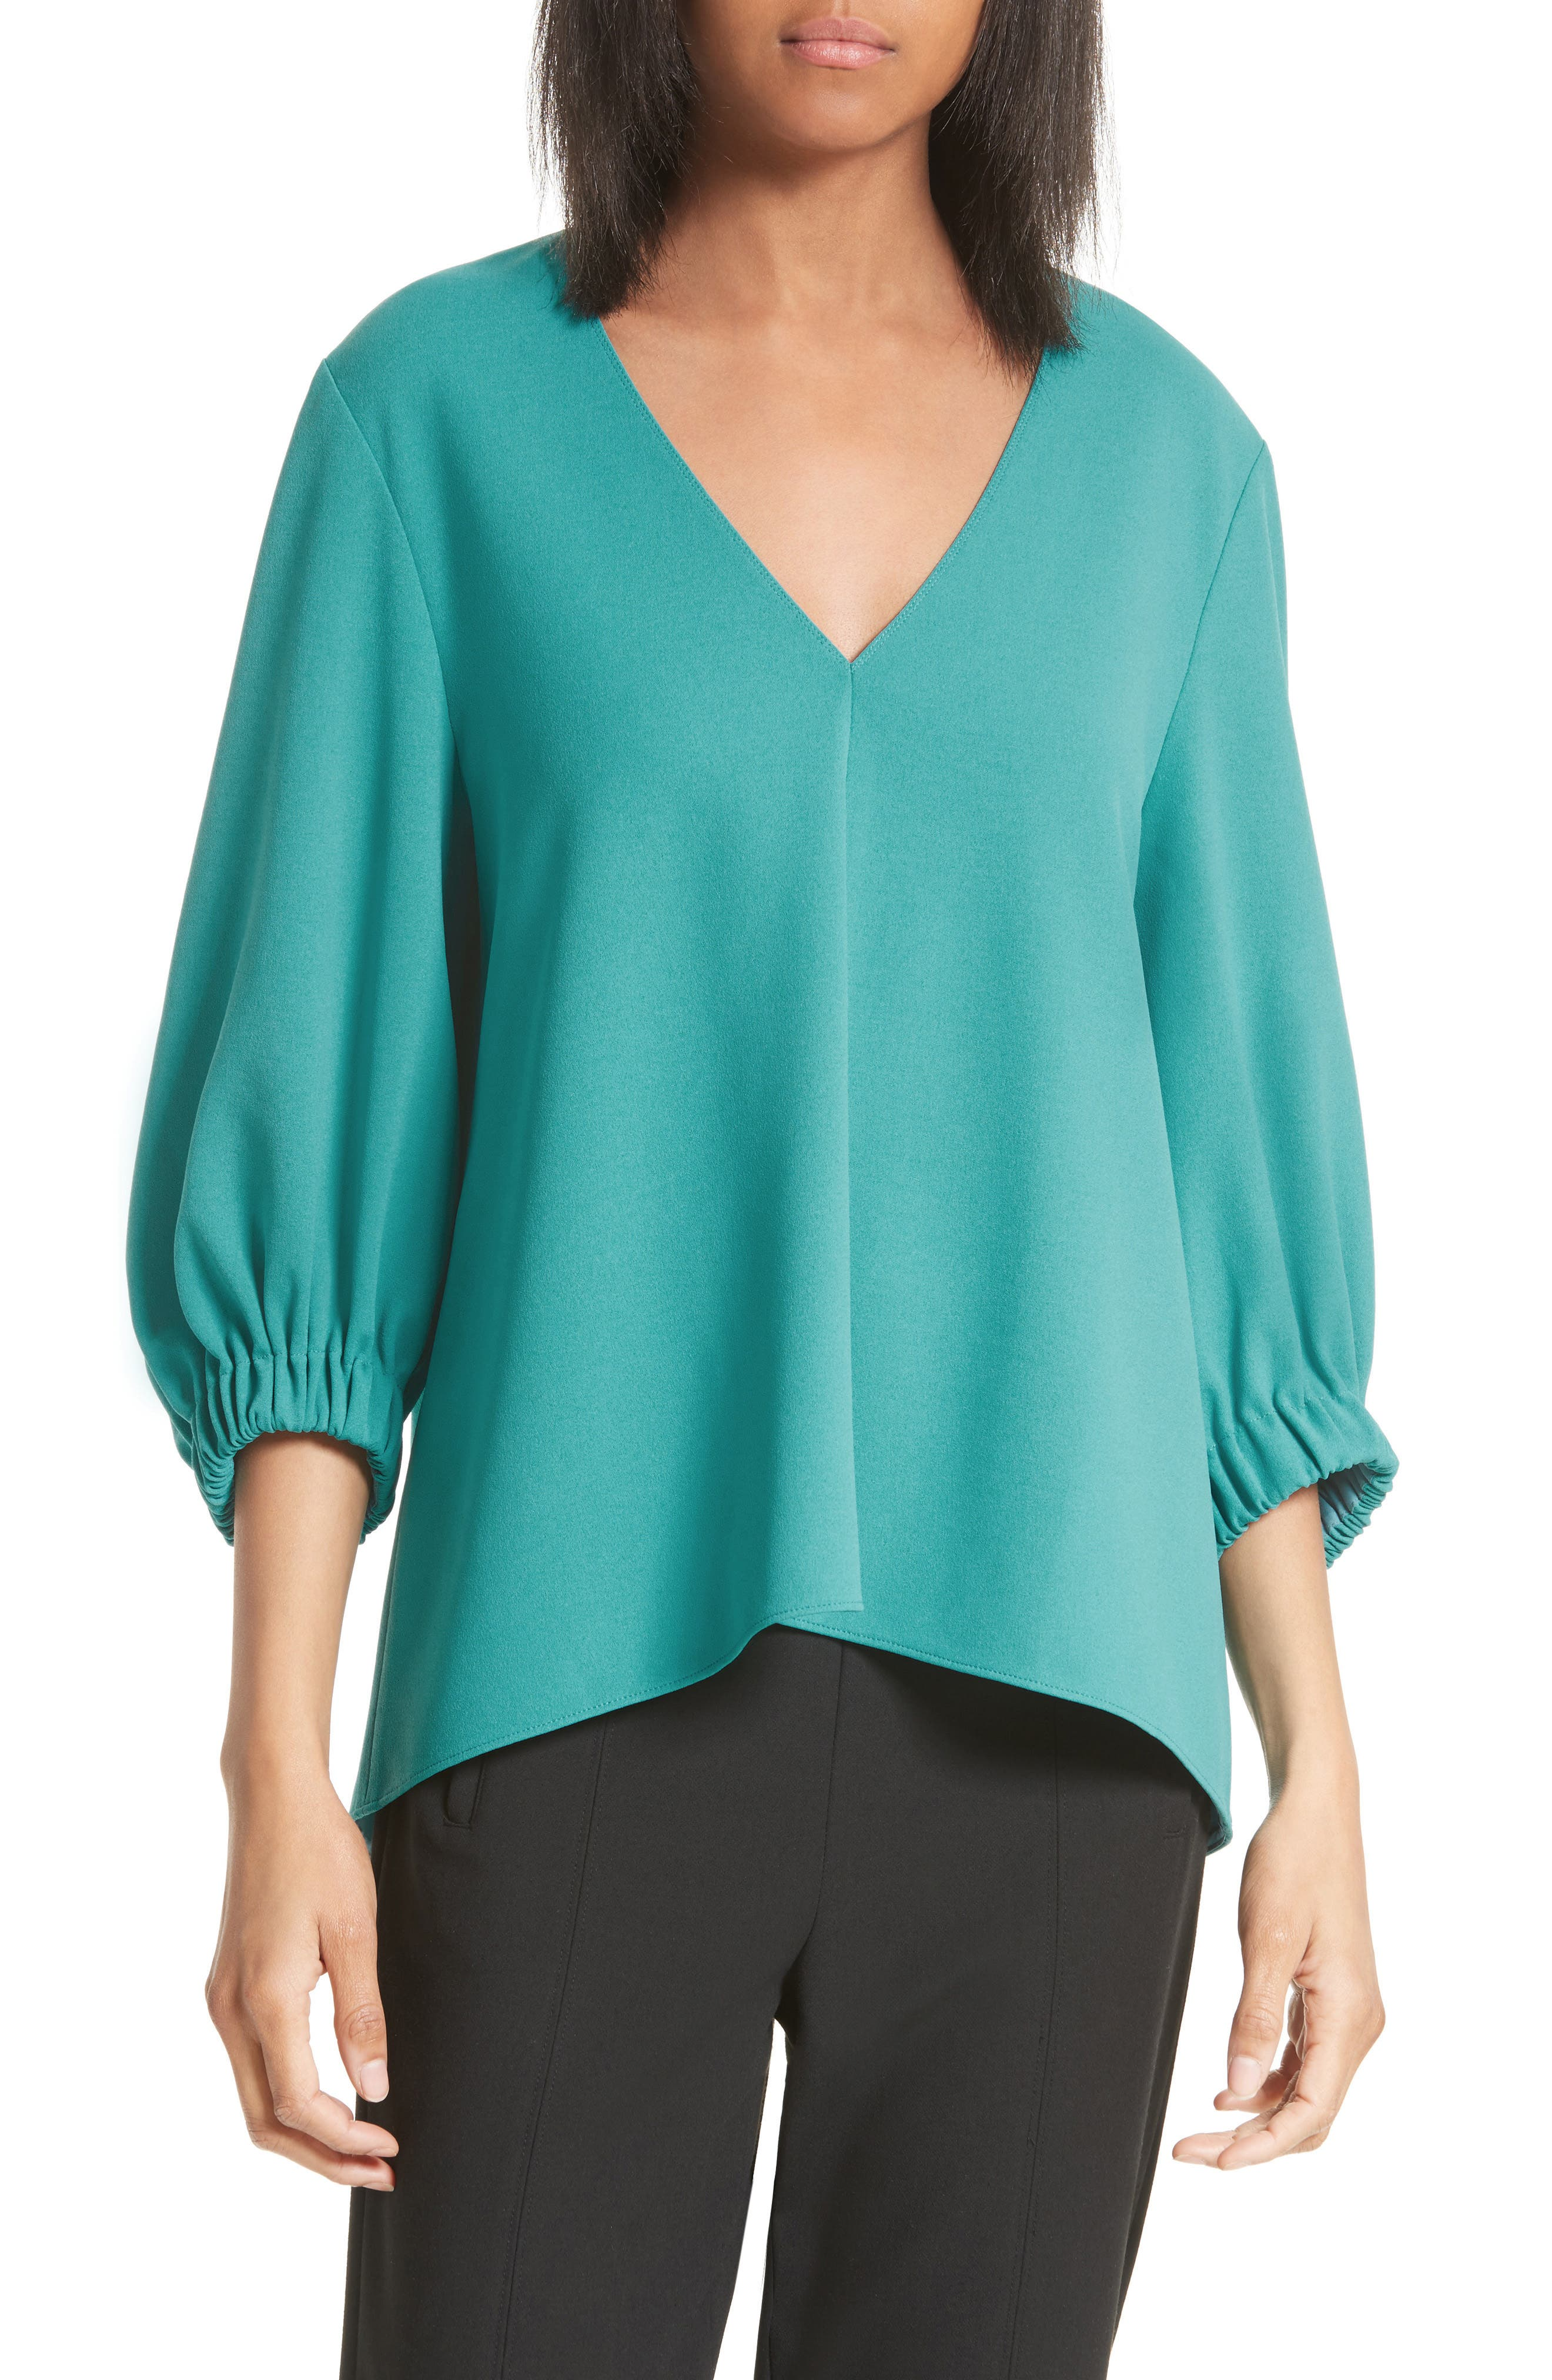 Main Image - Tibi Stretch Crepe Trapeze Top